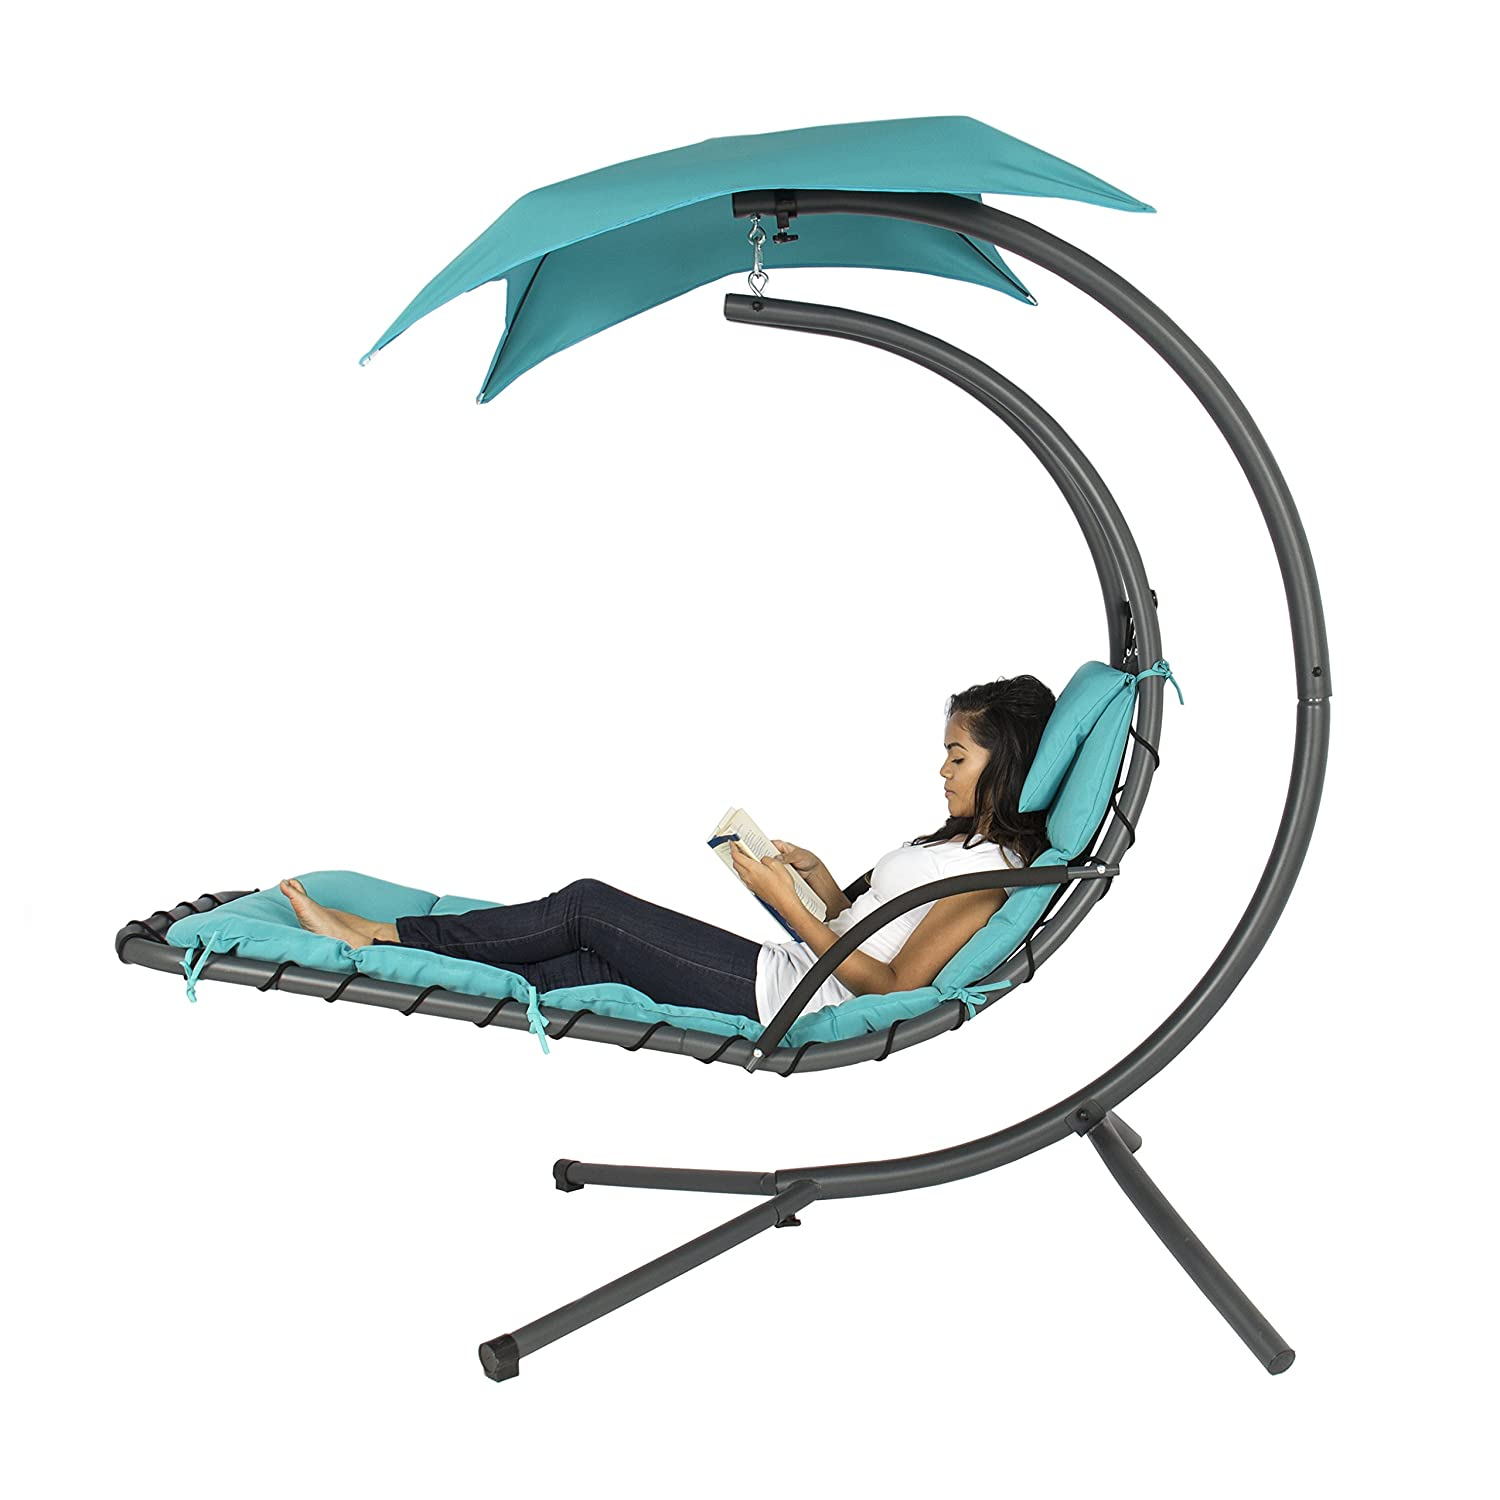 Amazon.com: Best Choice Products Hanging Chaise Lounger Chair Arc Stand Air  Porch Swing Hammock Chair Canopy Teal: Garden U0026 Outdoor